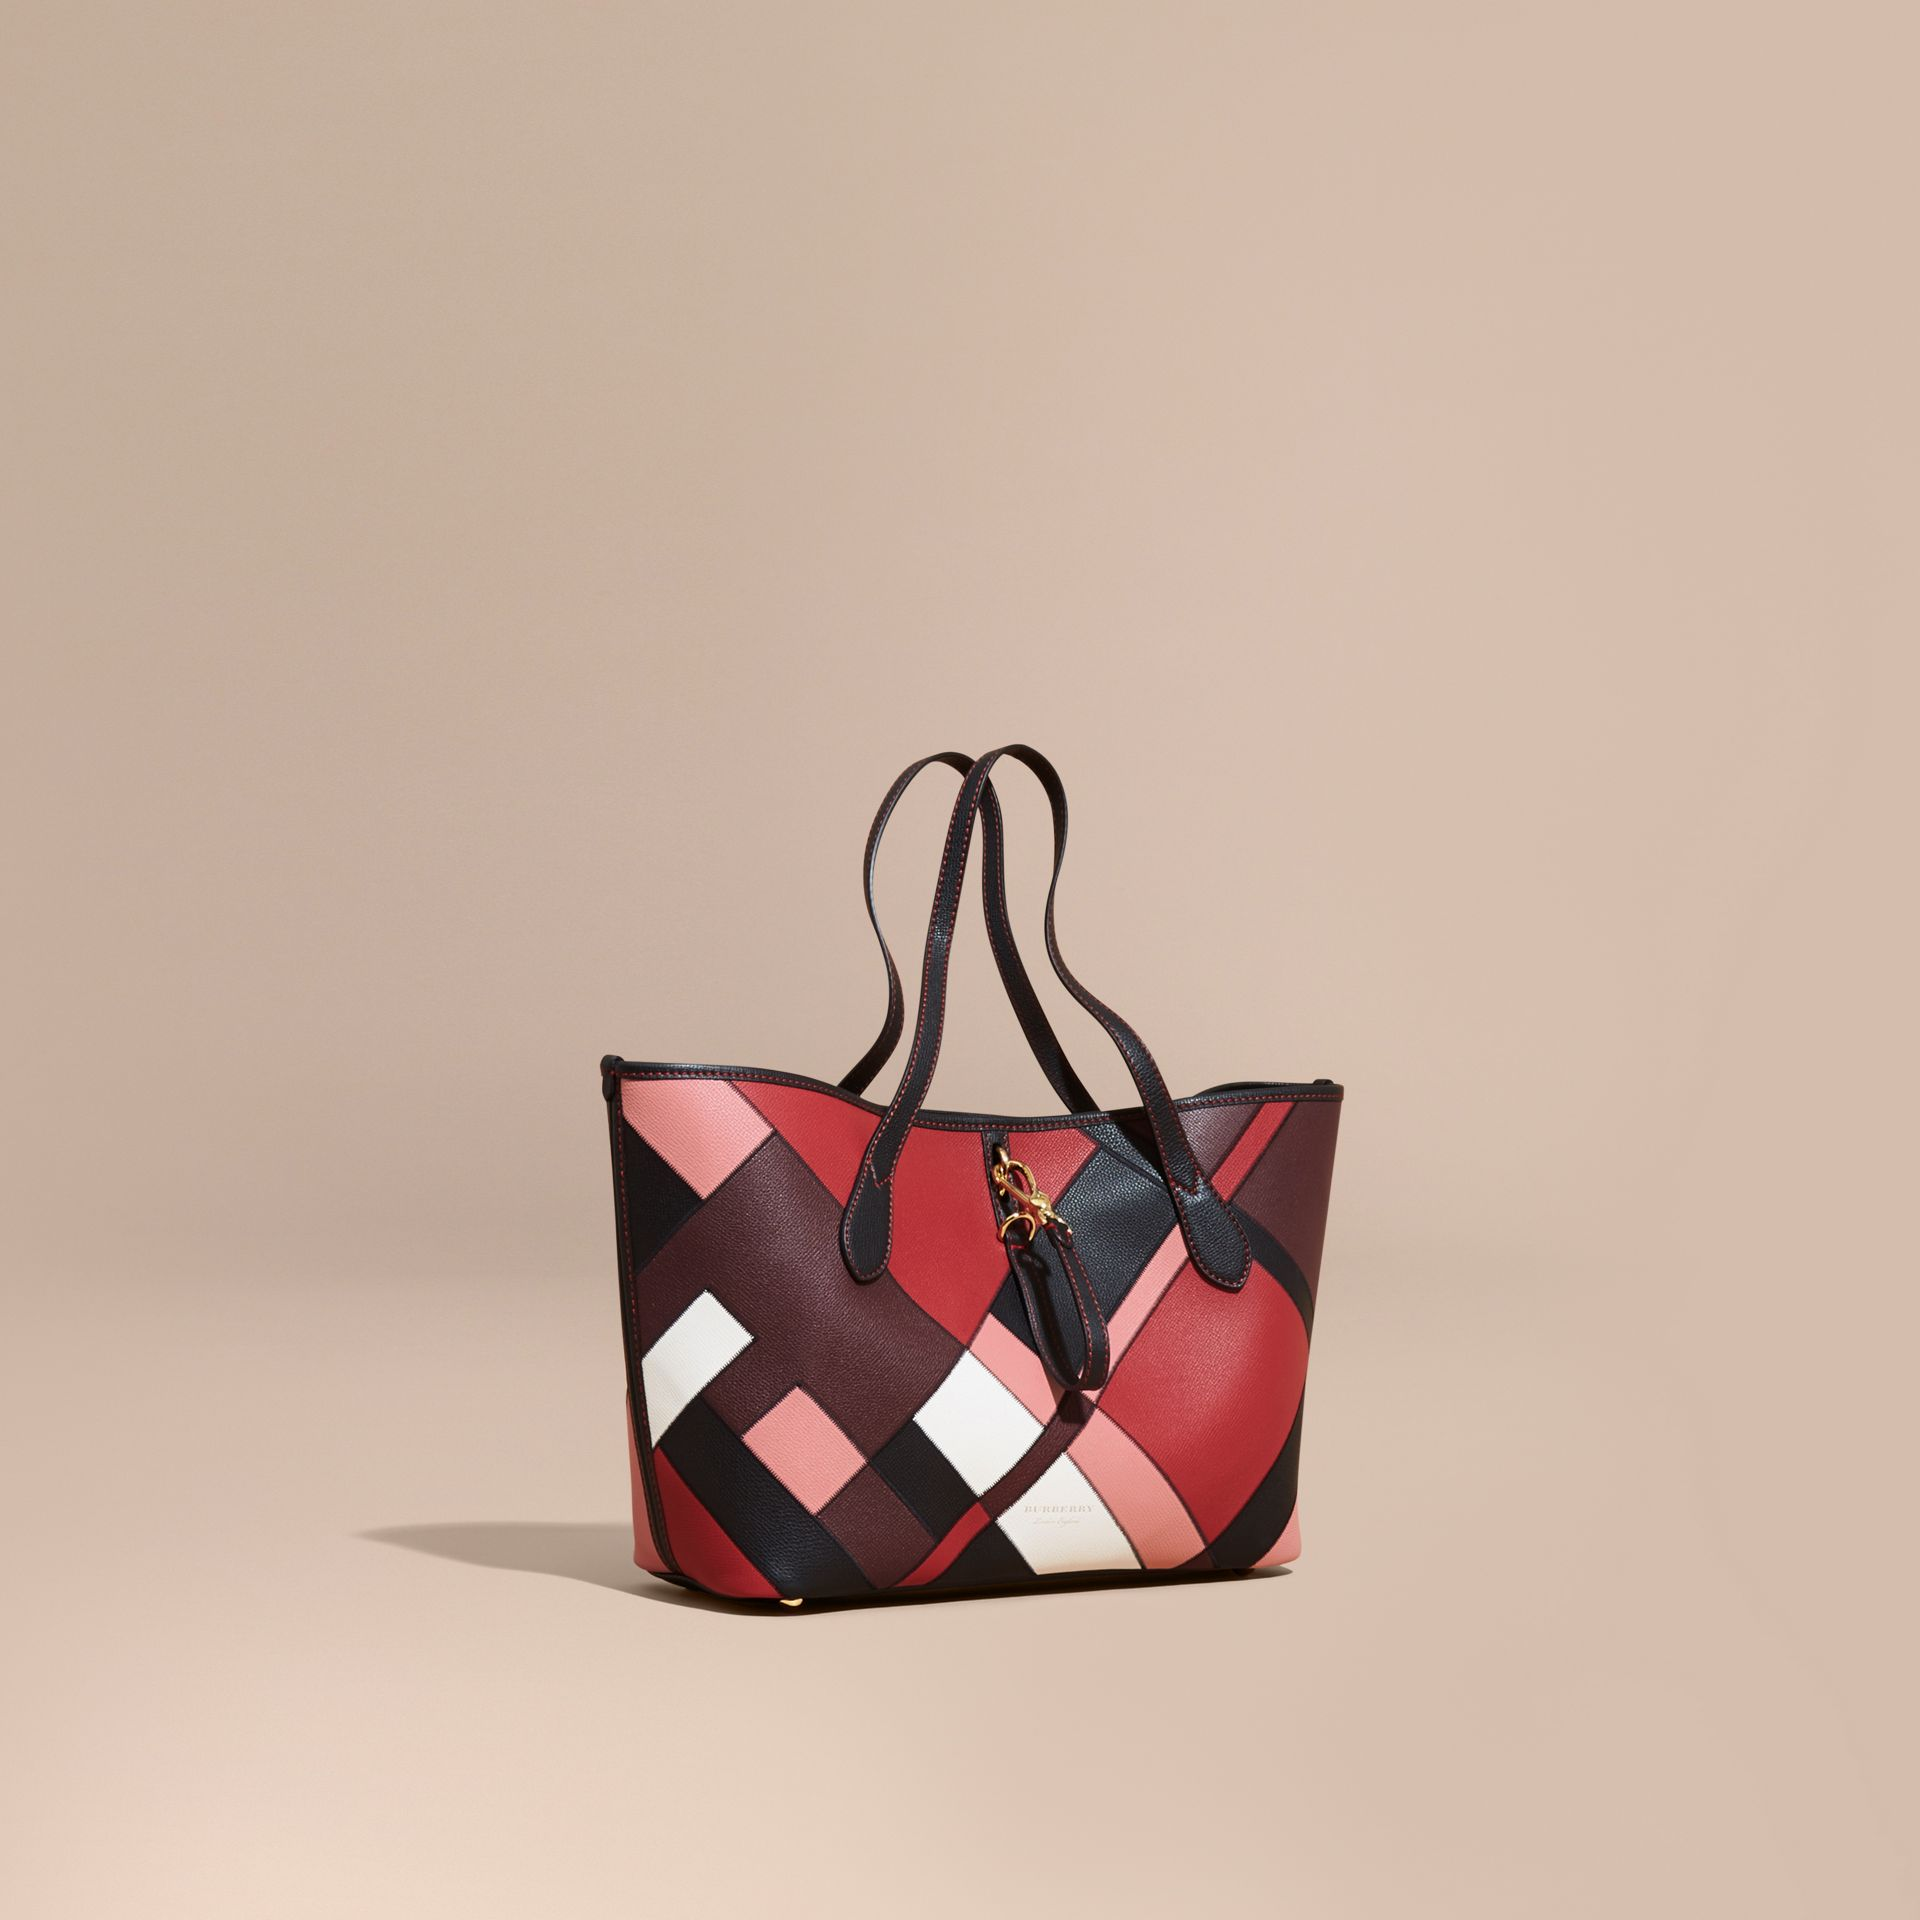 Medium Patchwork Grainy Leather Tote Bag in Pink - Women | Burberry - gallery image 1